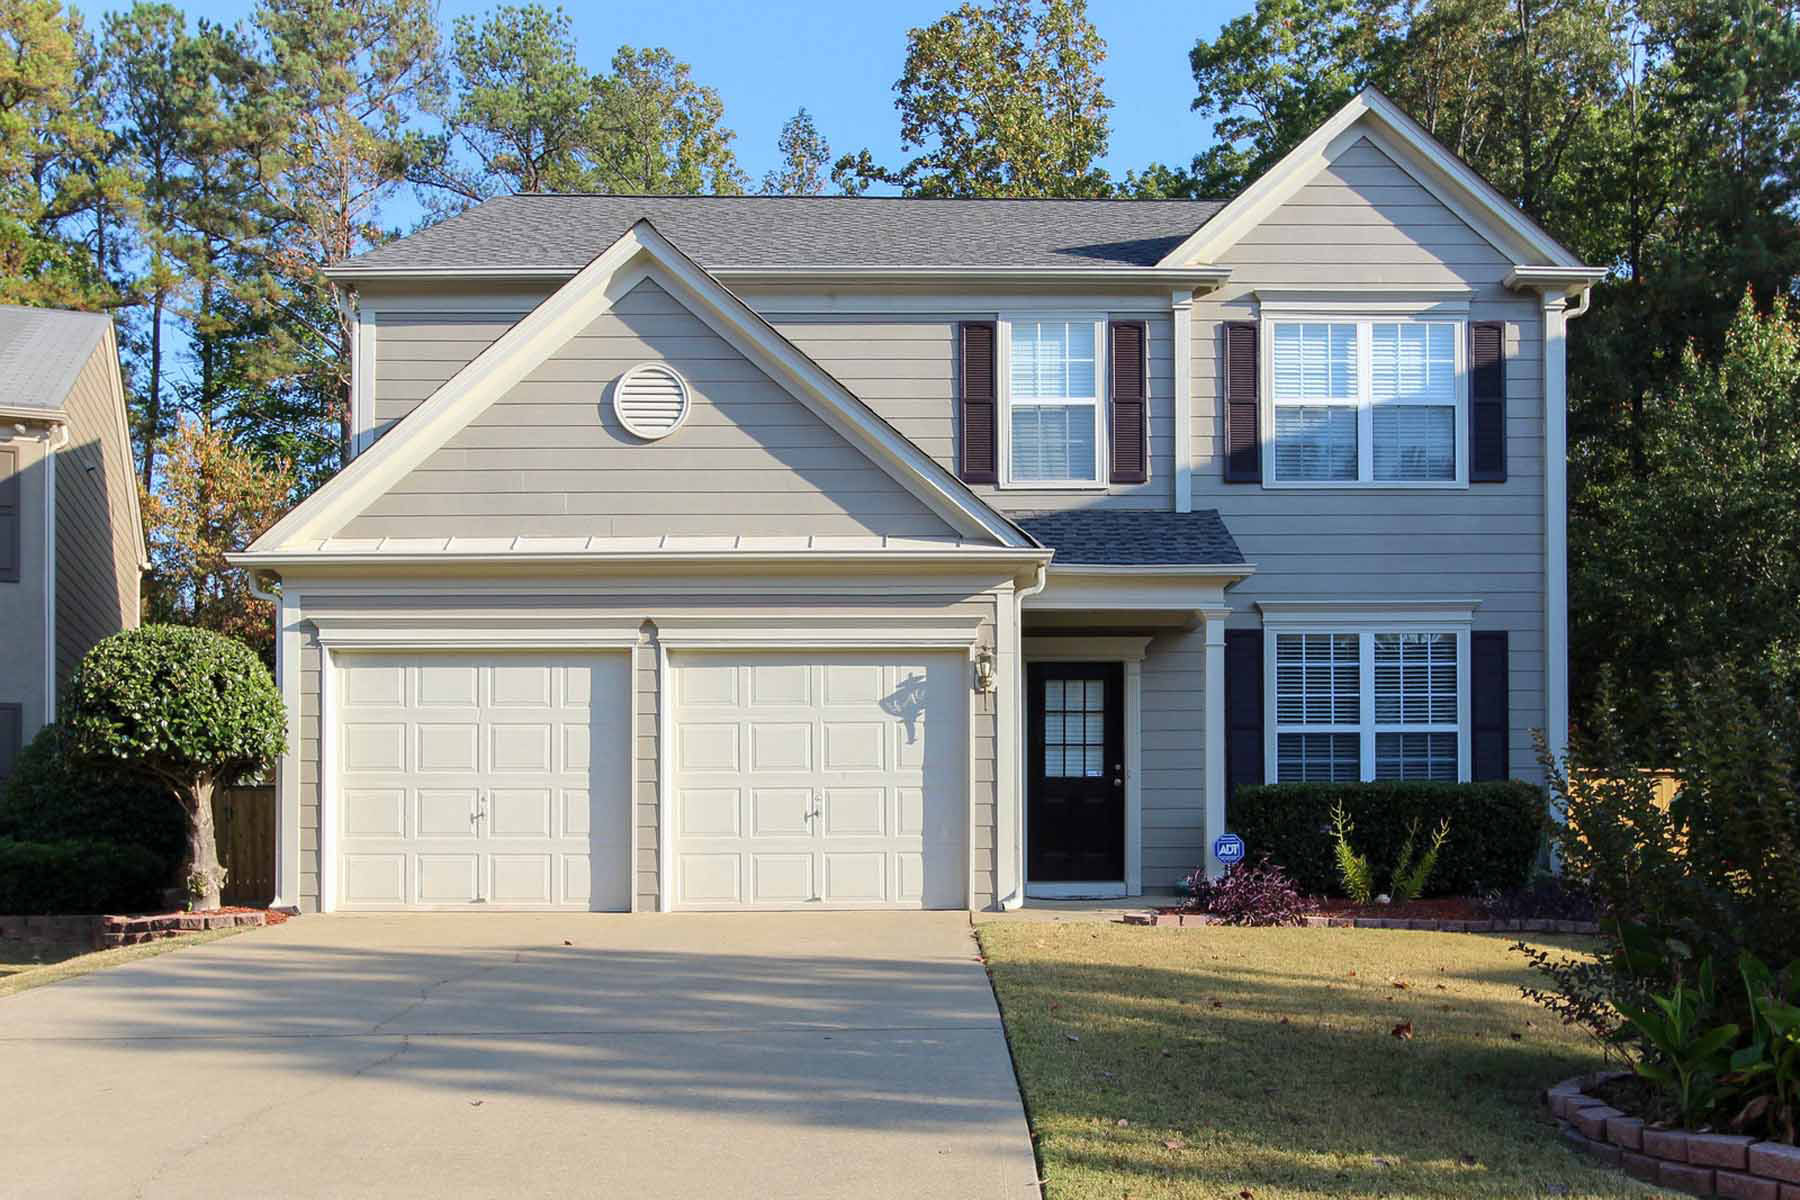 一戸建て のために 賃貸 アット Completely Updated With Private Fenced Backyard Near All Alpharetta Has To Offer 745 Soneley Court Milton, ジョージア 30004 アメリカ